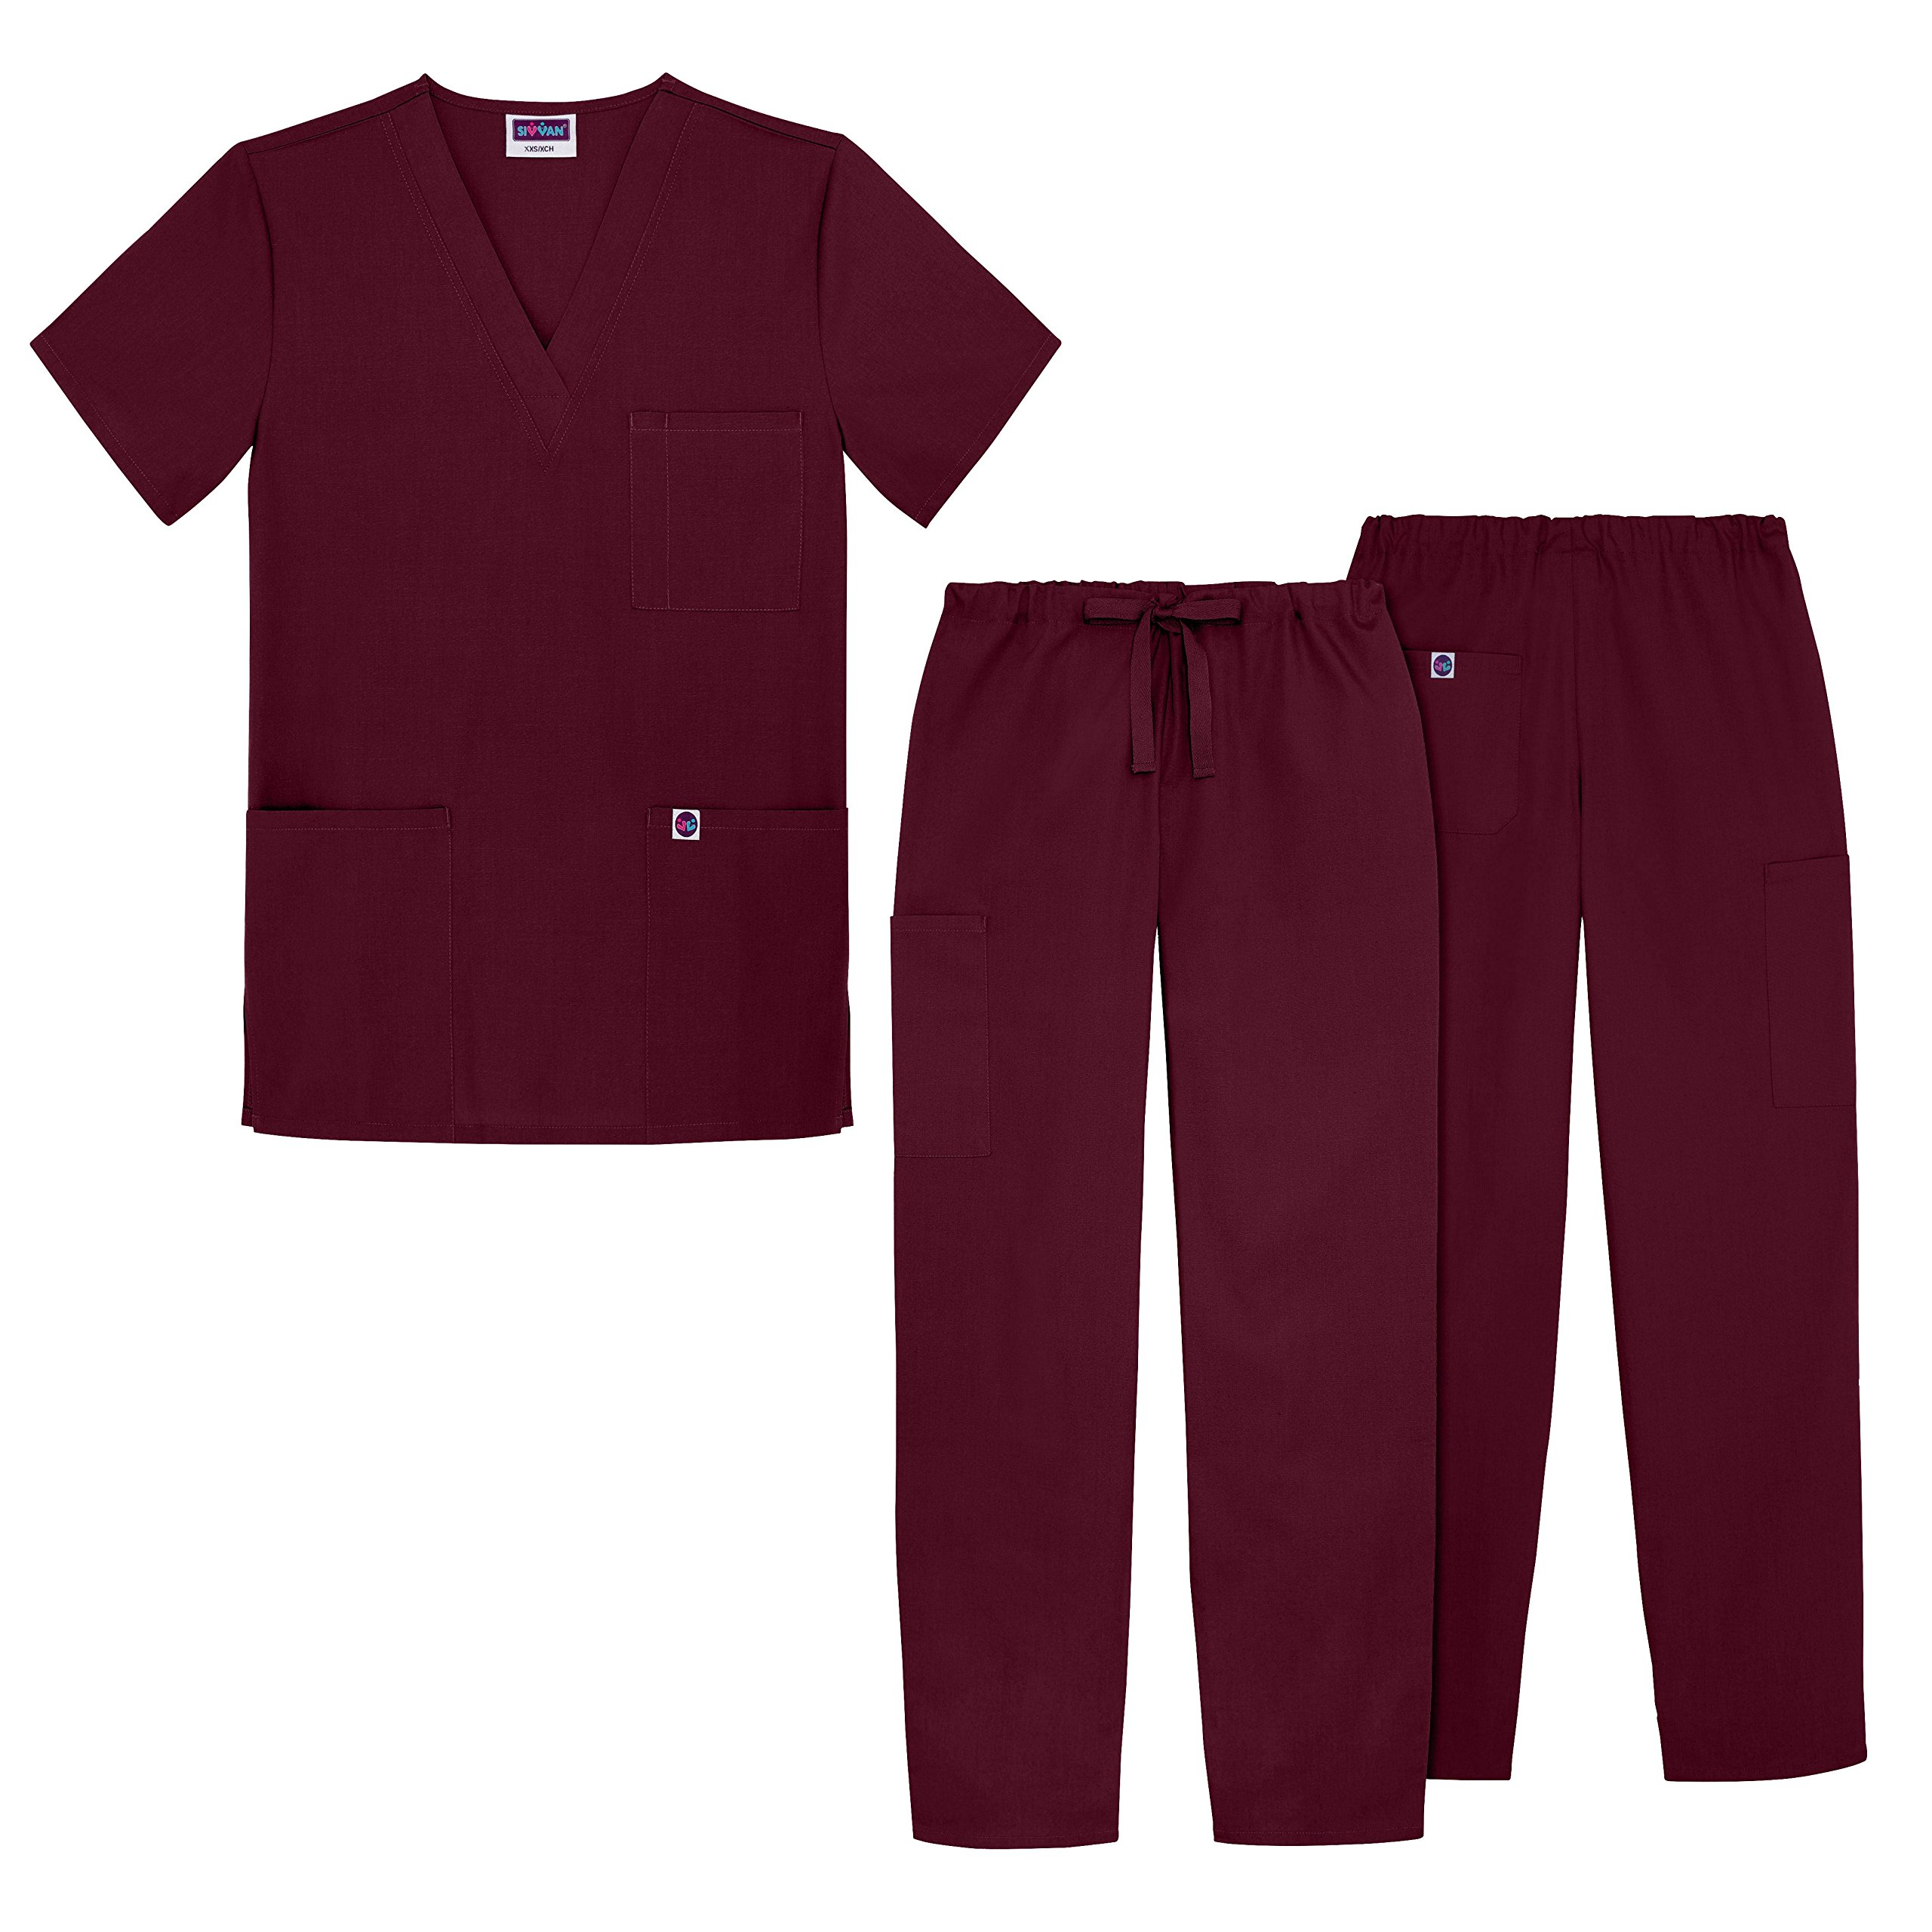 Sivvan Unisex Classic Scrub Set V-neck Top / Drawstring Pants (Available in 12 Solid Colors) - S8400 - Burgundy - M